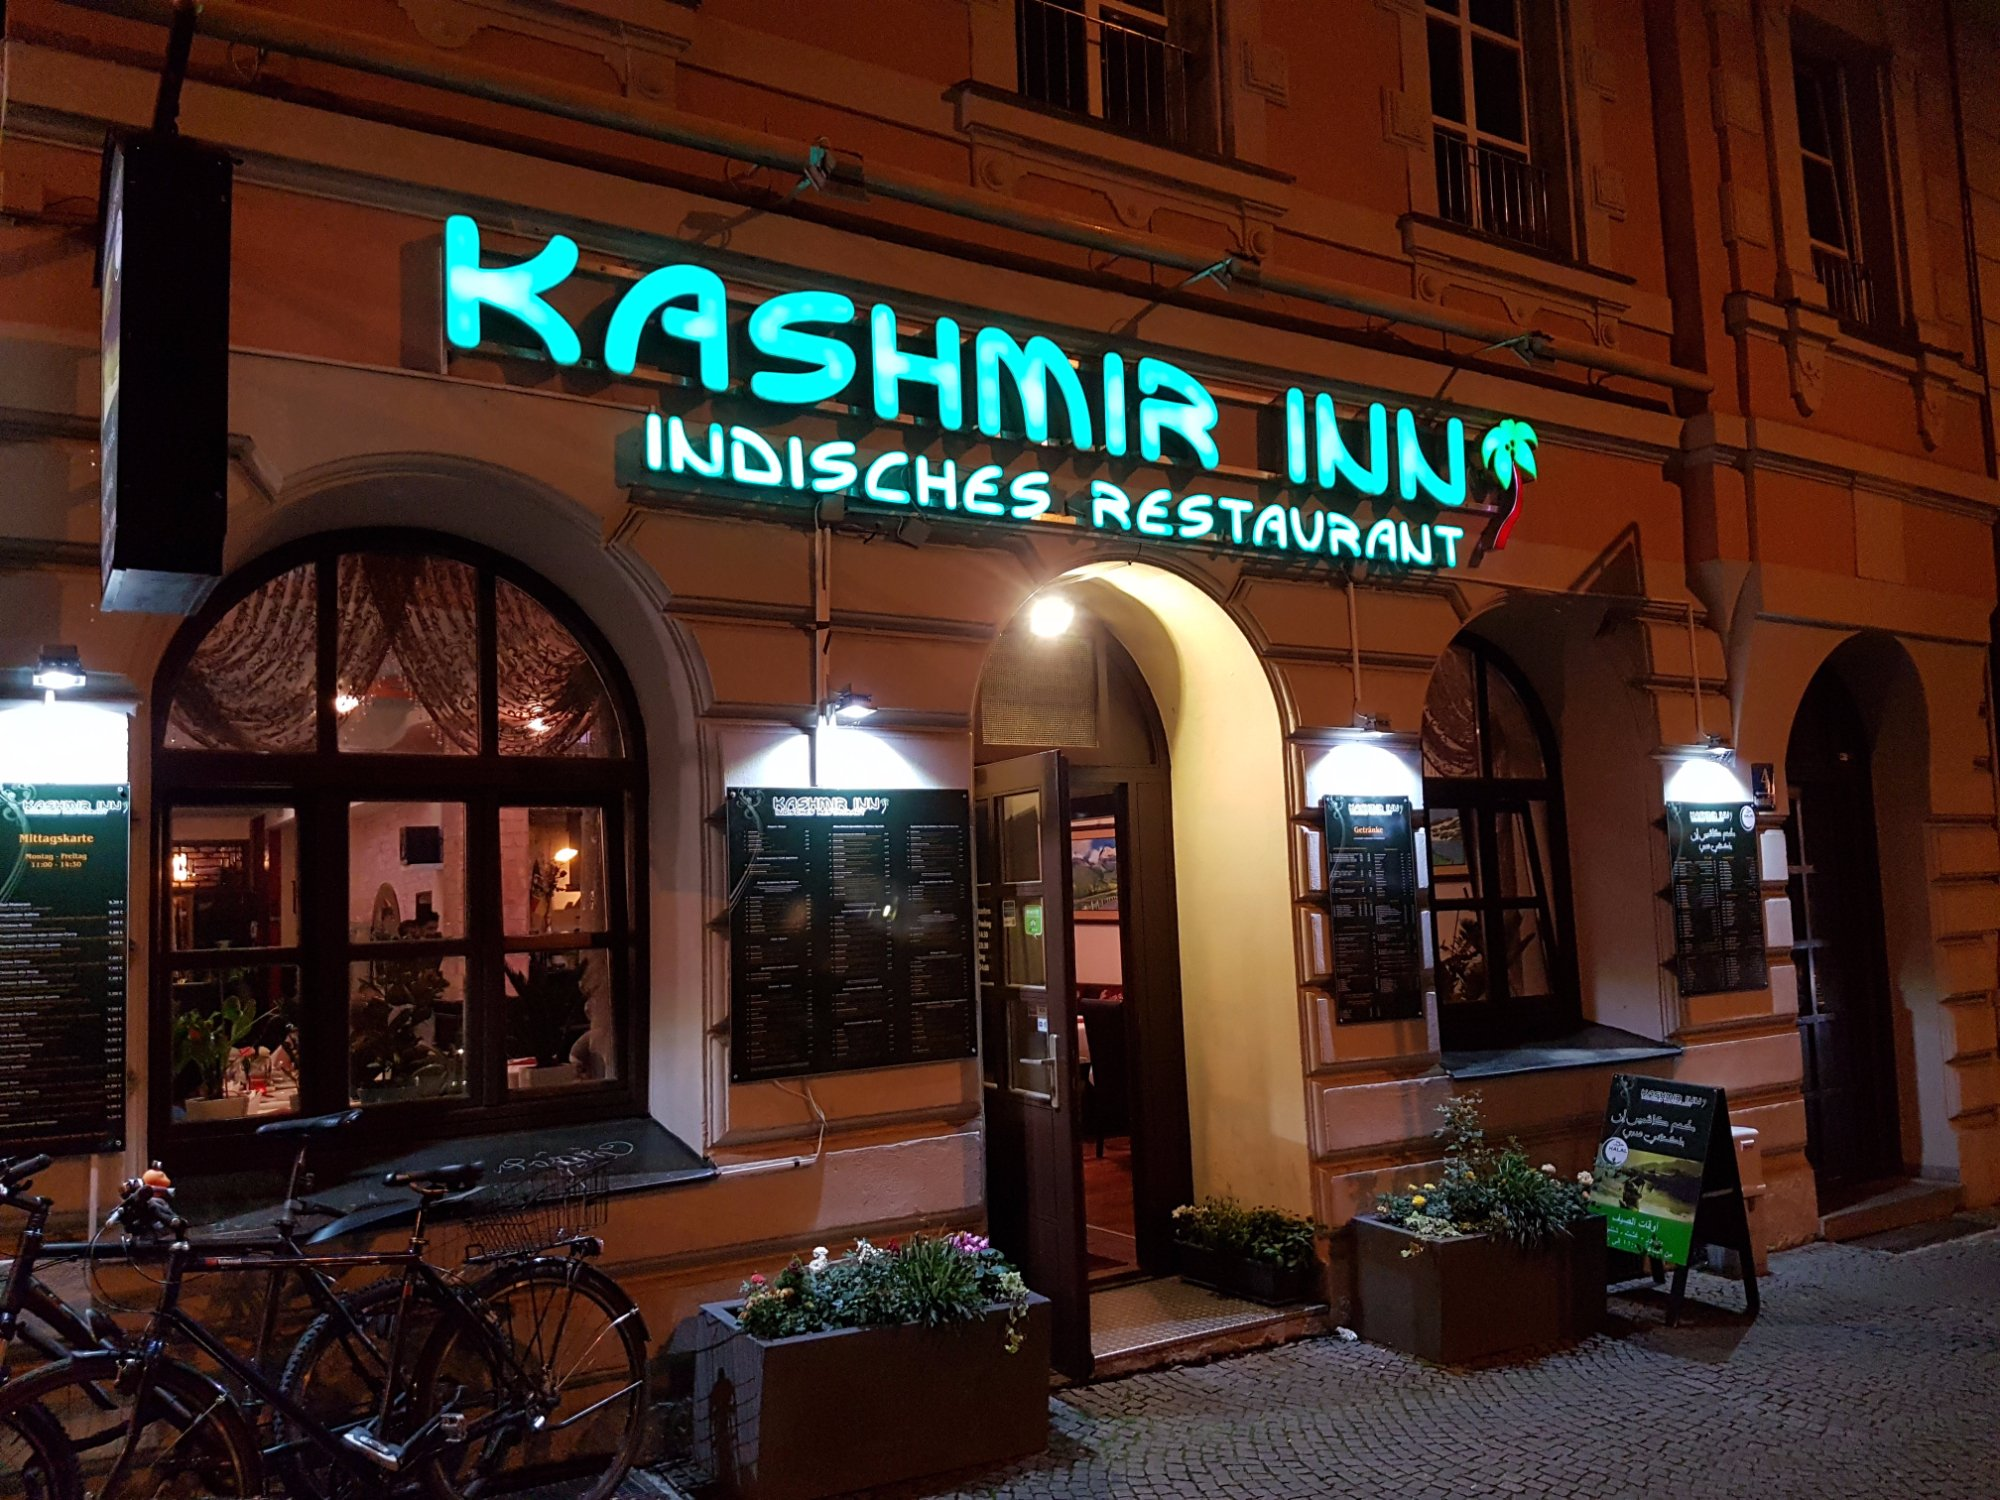 Things To Do in Afghani, Restaurants in Afghani